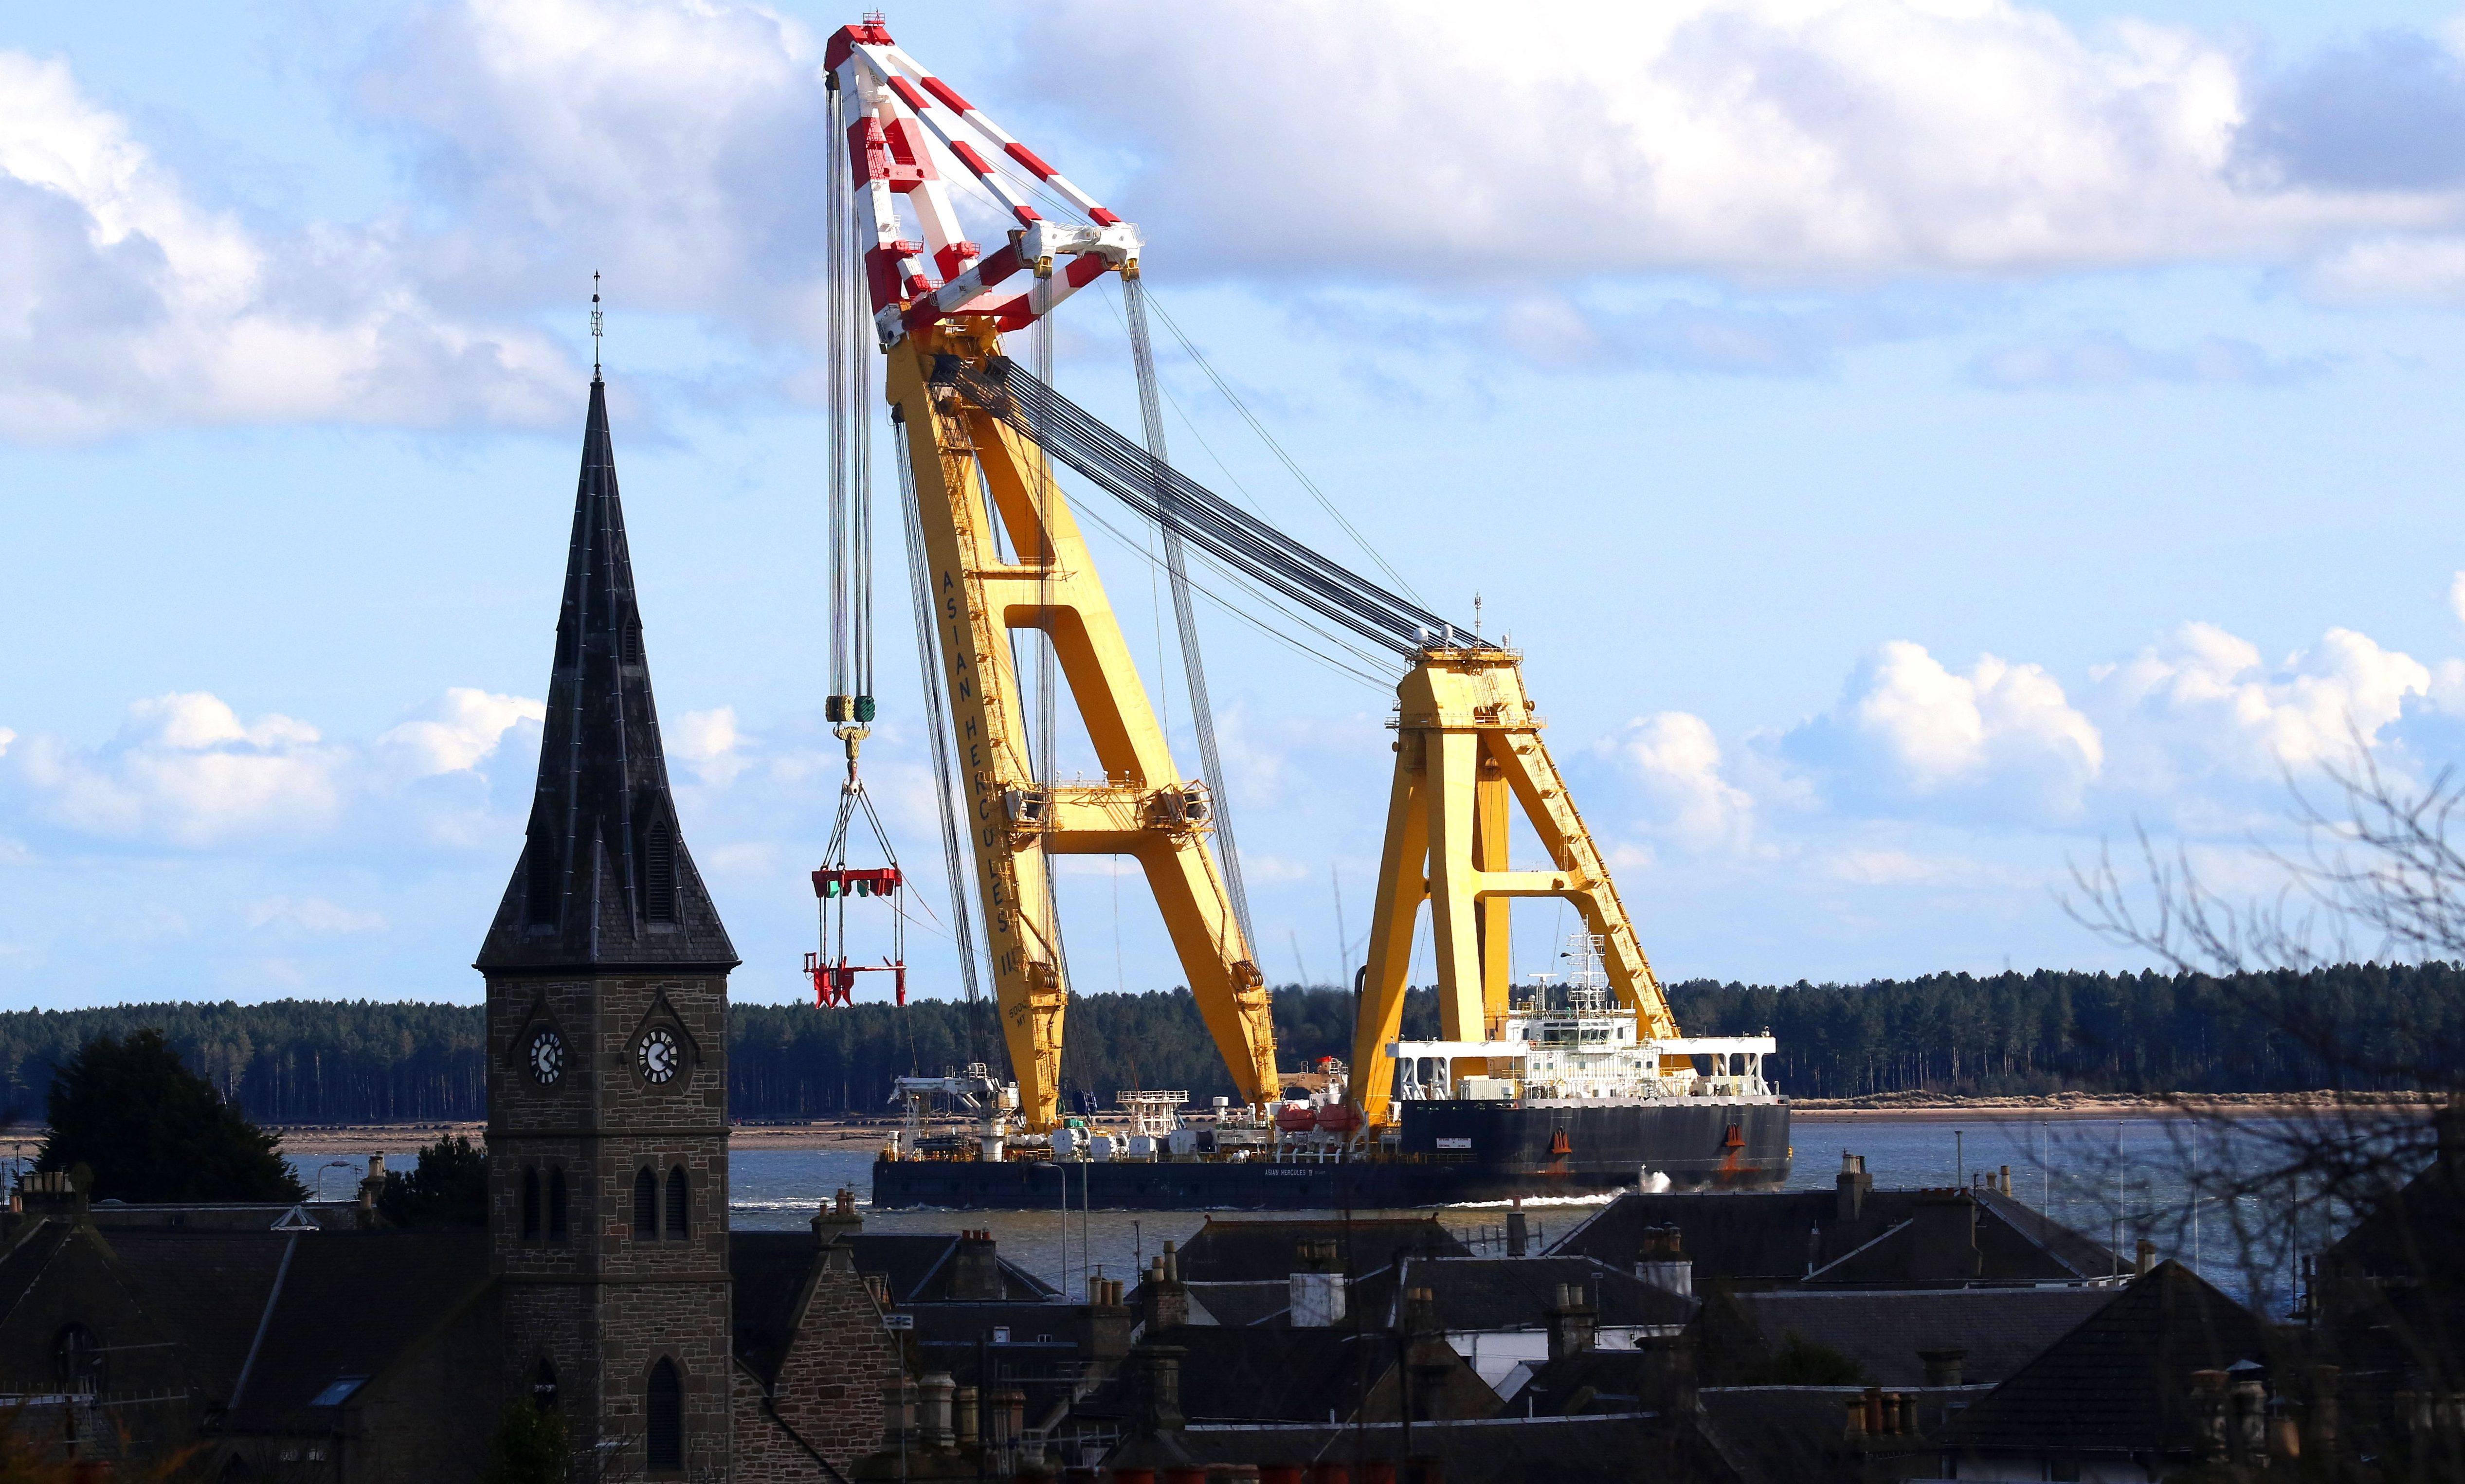 The Asian Hercules III crane passing Broughty Ferry.